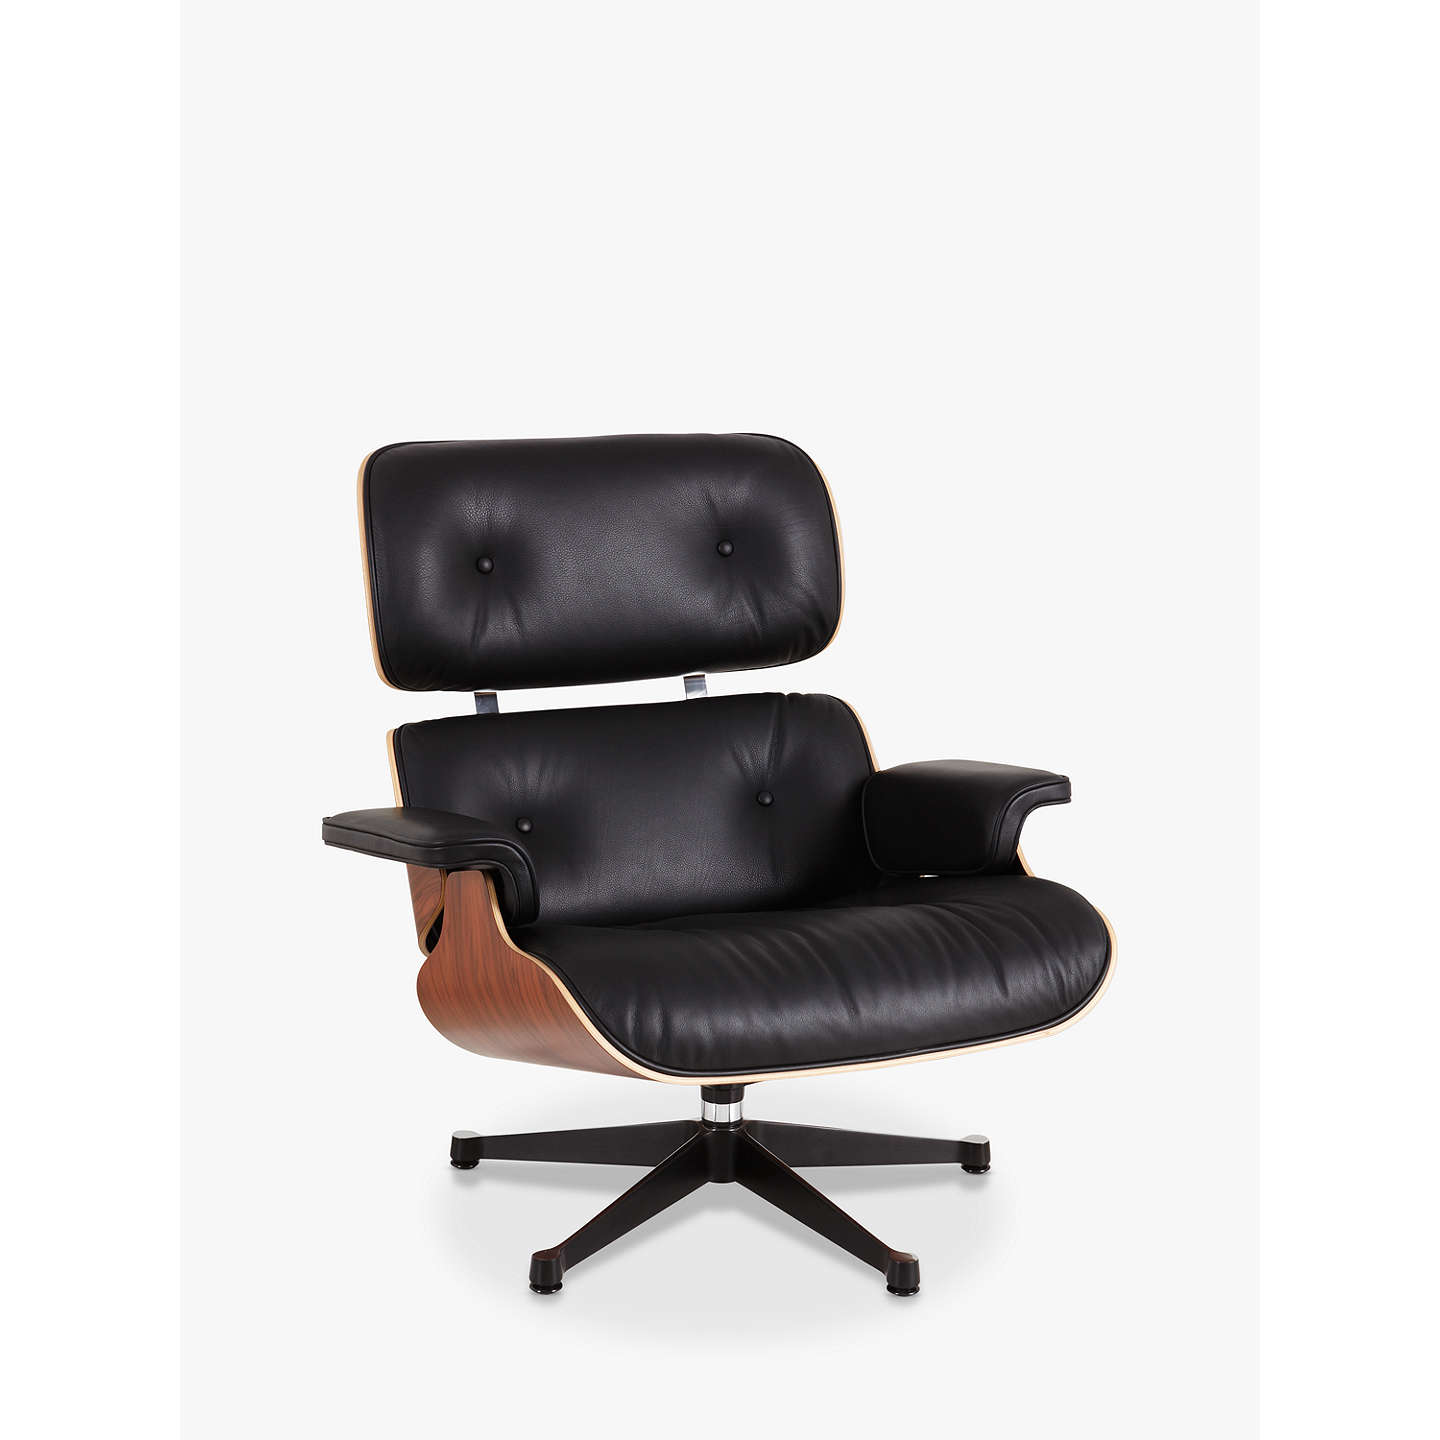 BuyVitra Eames Lounge Armchair, Black/ Pallisander Shell Online at johnlewis.com